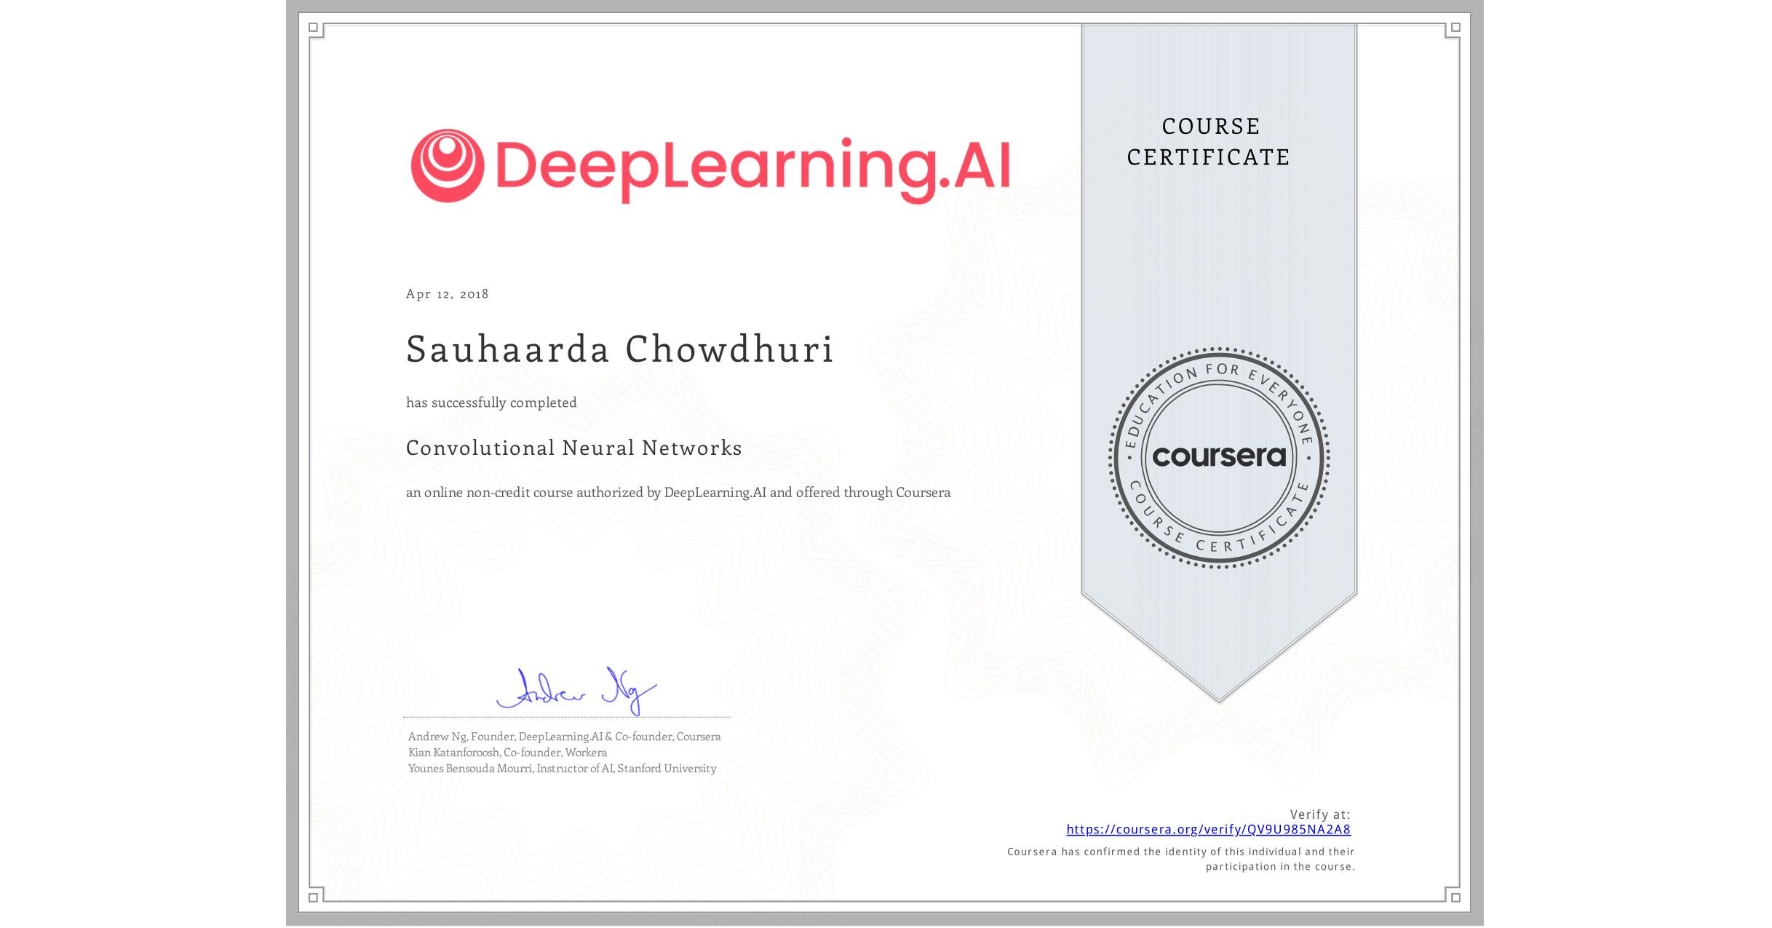 View certificate for Sauhaarda Chowdhuri, Convolutional Neural Networks, an online non-credit course authorized by DeepLearning.AI and offered through Coursera